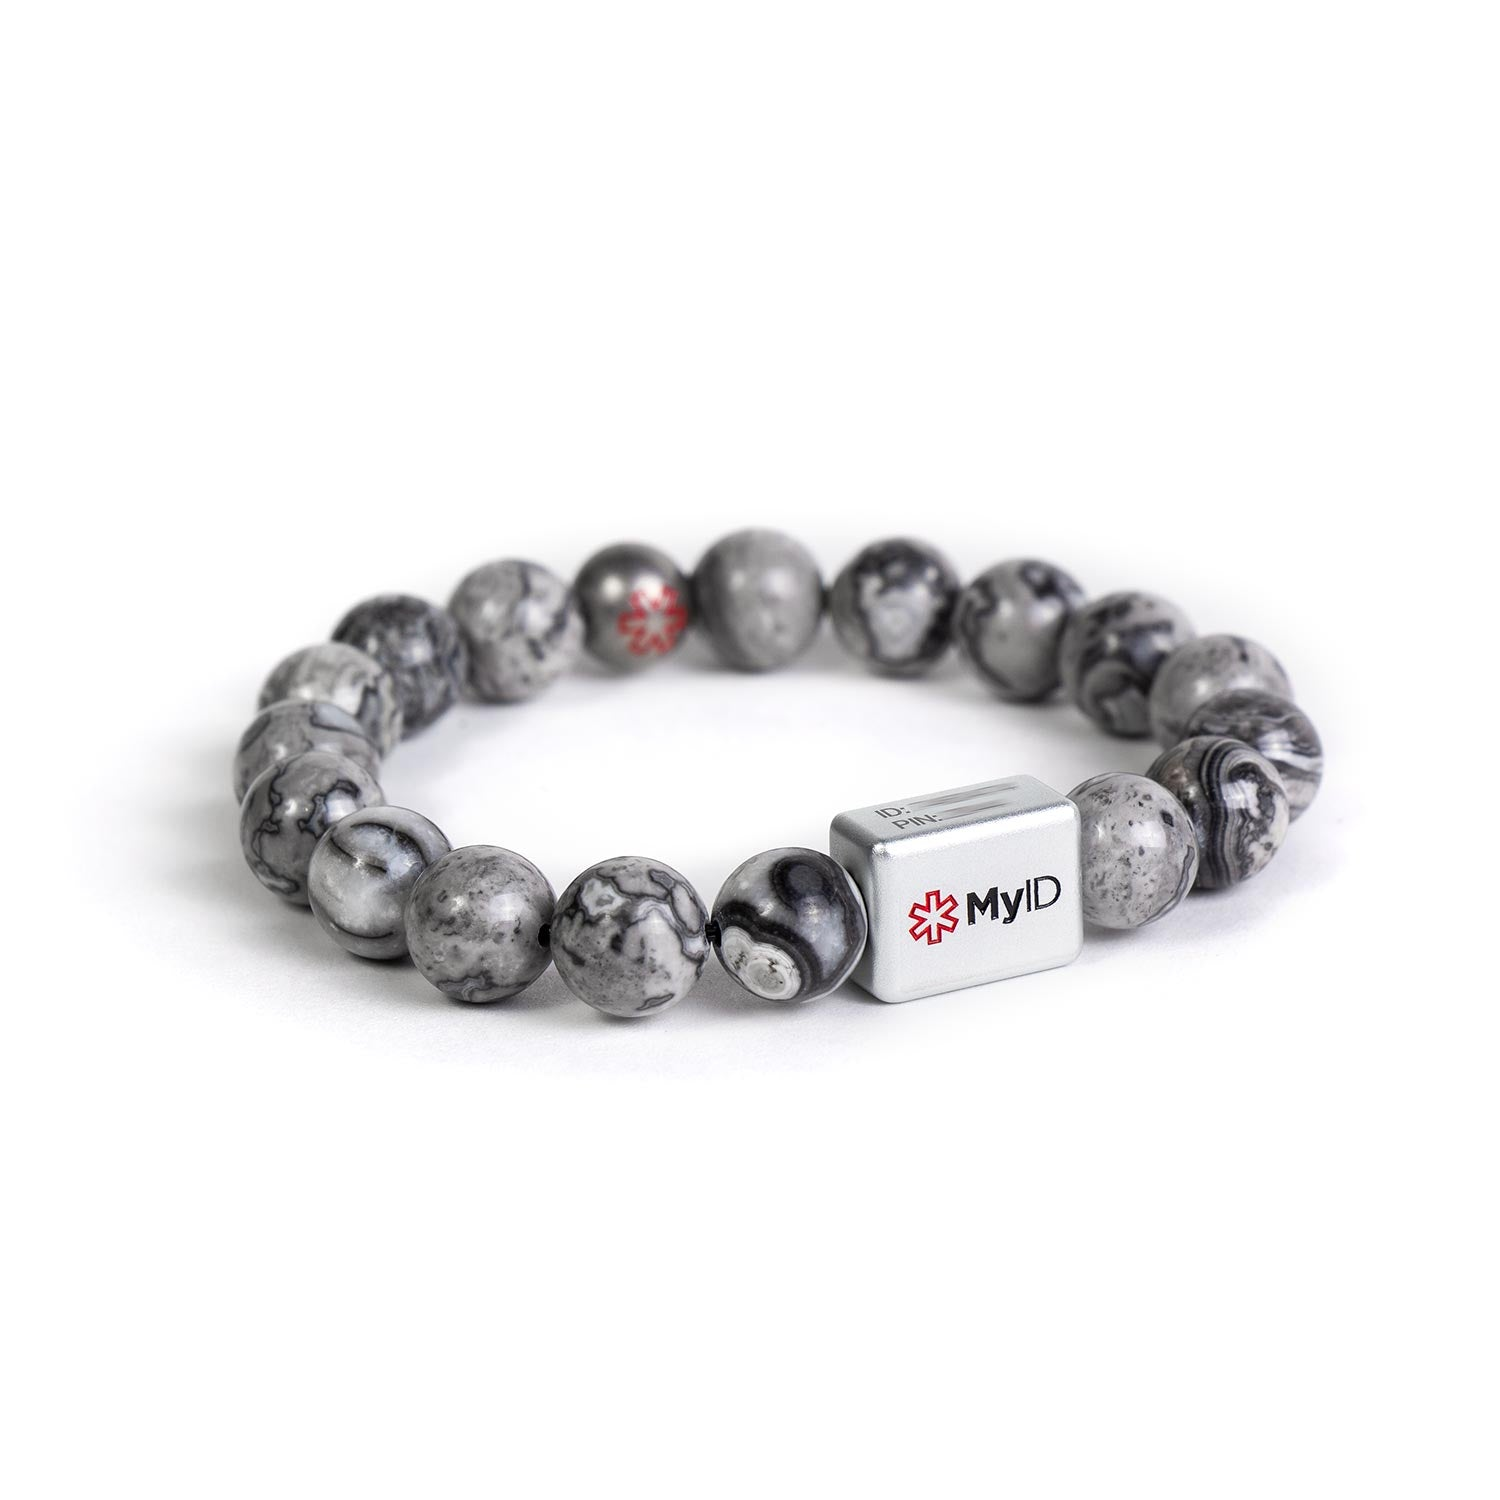 Silver Agate Medical ID Bracelet